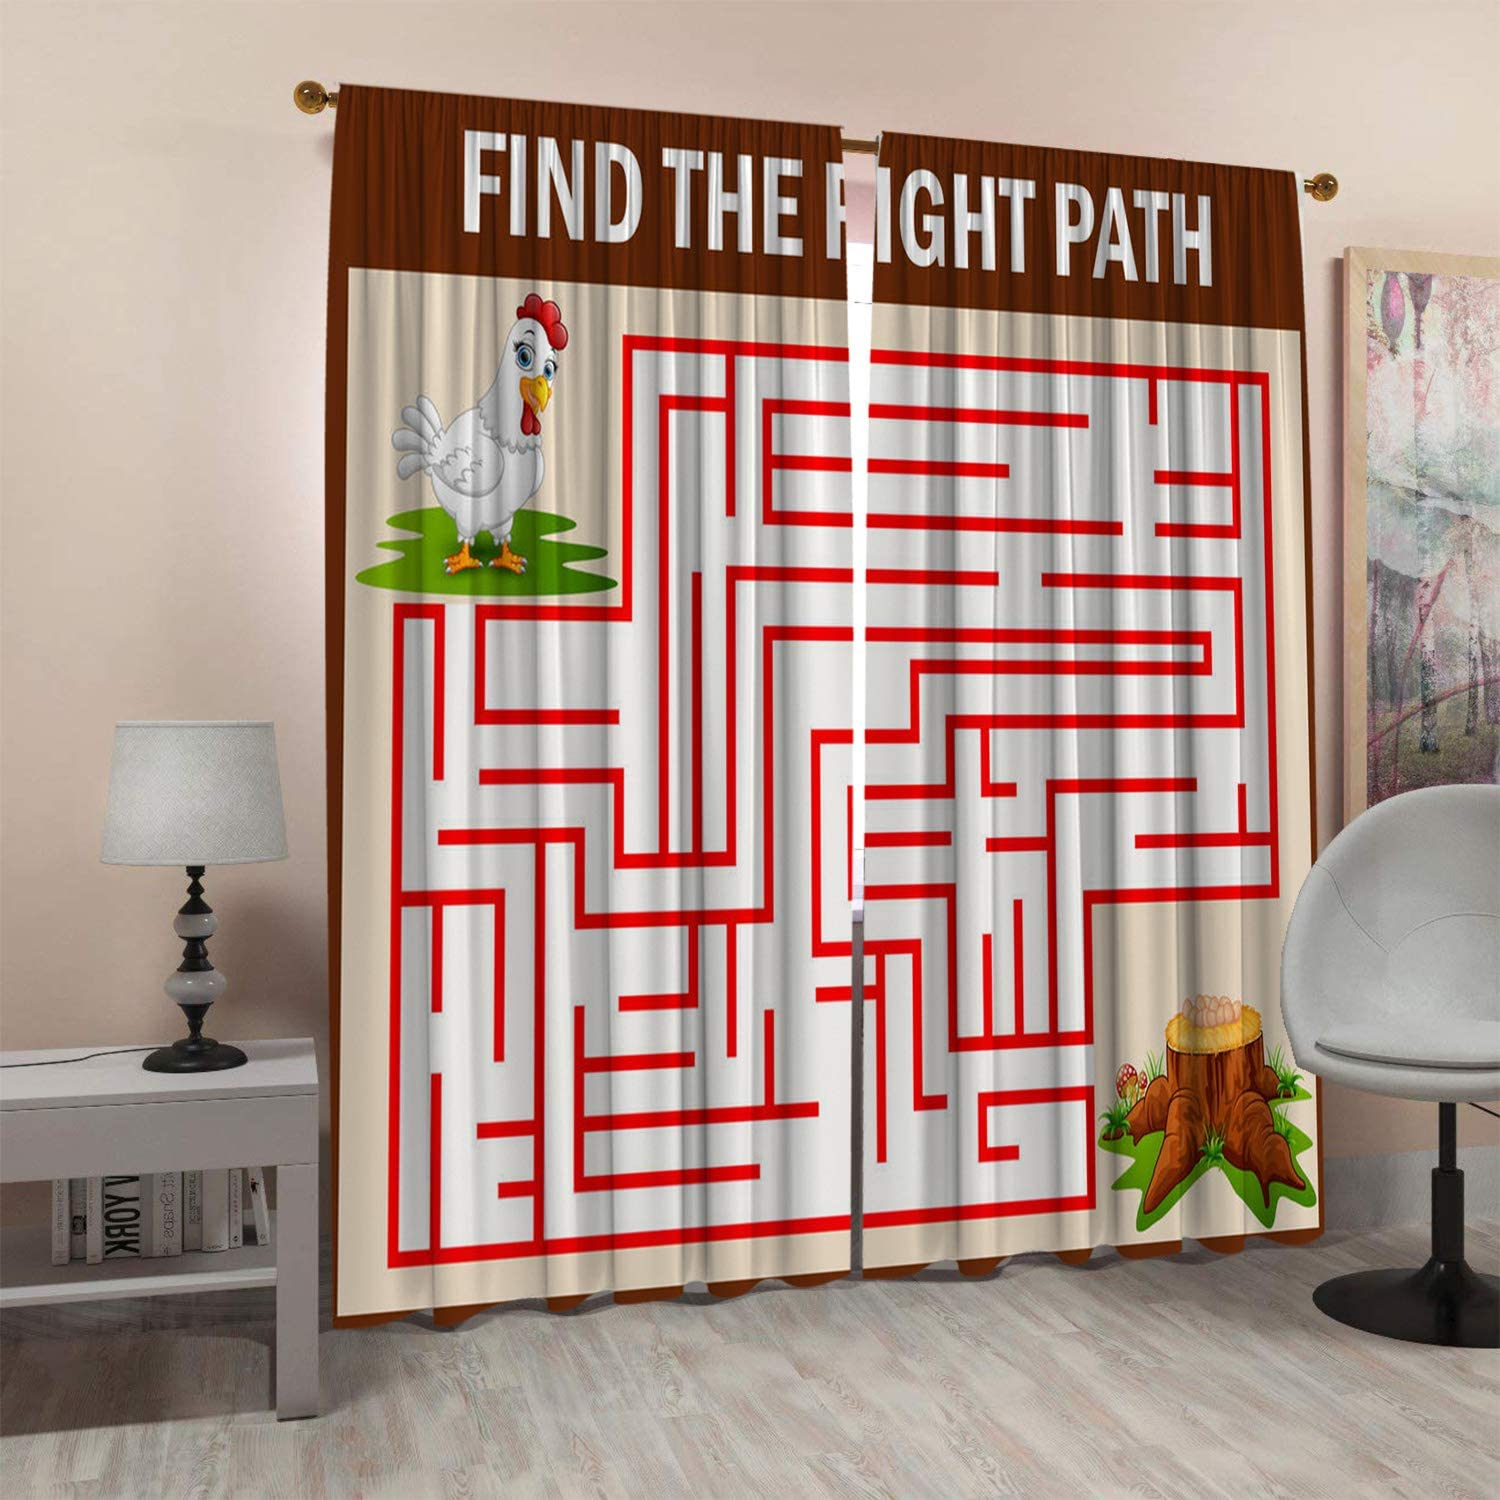 SeptSonne Kids Room Window Curtain Panels Drapes Illustration of A Maze Game to Find The Hen Walks to The Egg Boys Room Curtains Artwork Customized Curtains 55x63 Inch